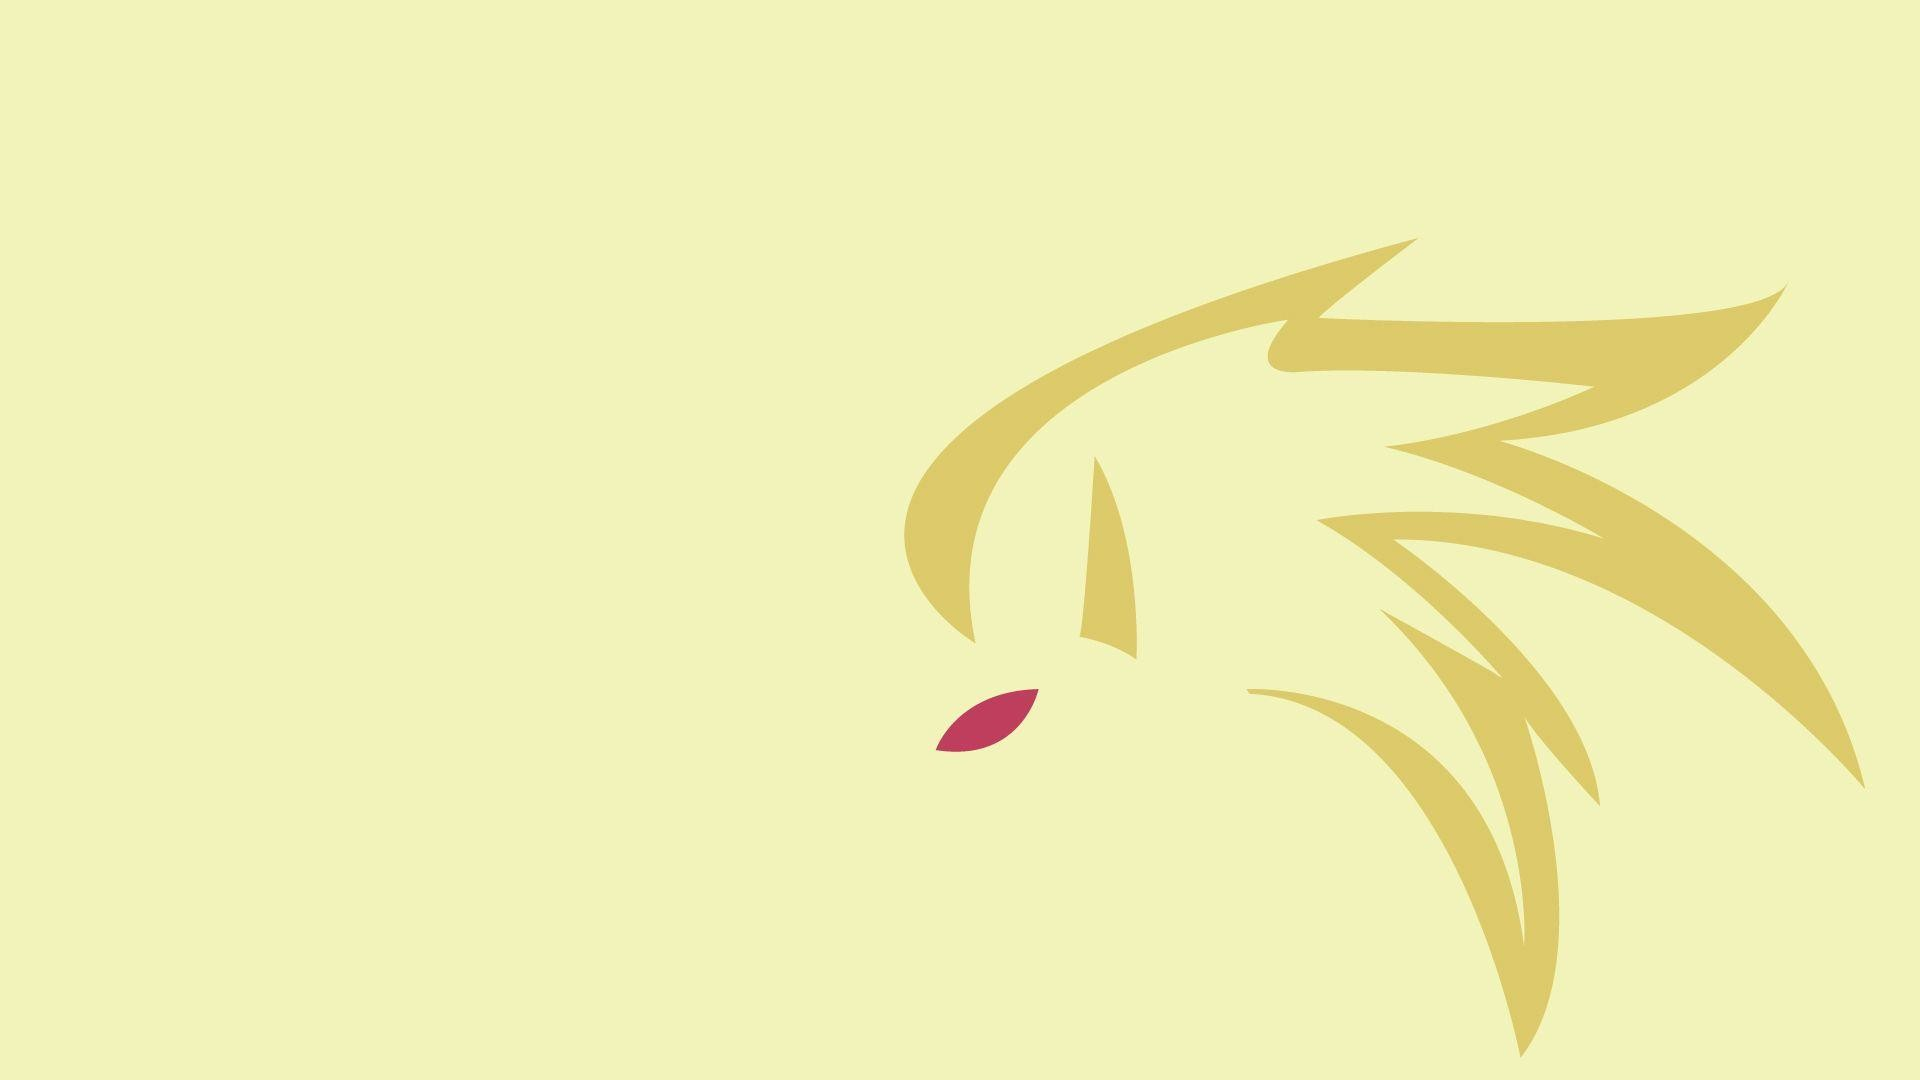 1920x1080 Minimalist Pokemon. Ninetails. | Pictures I Love | Pinterest .